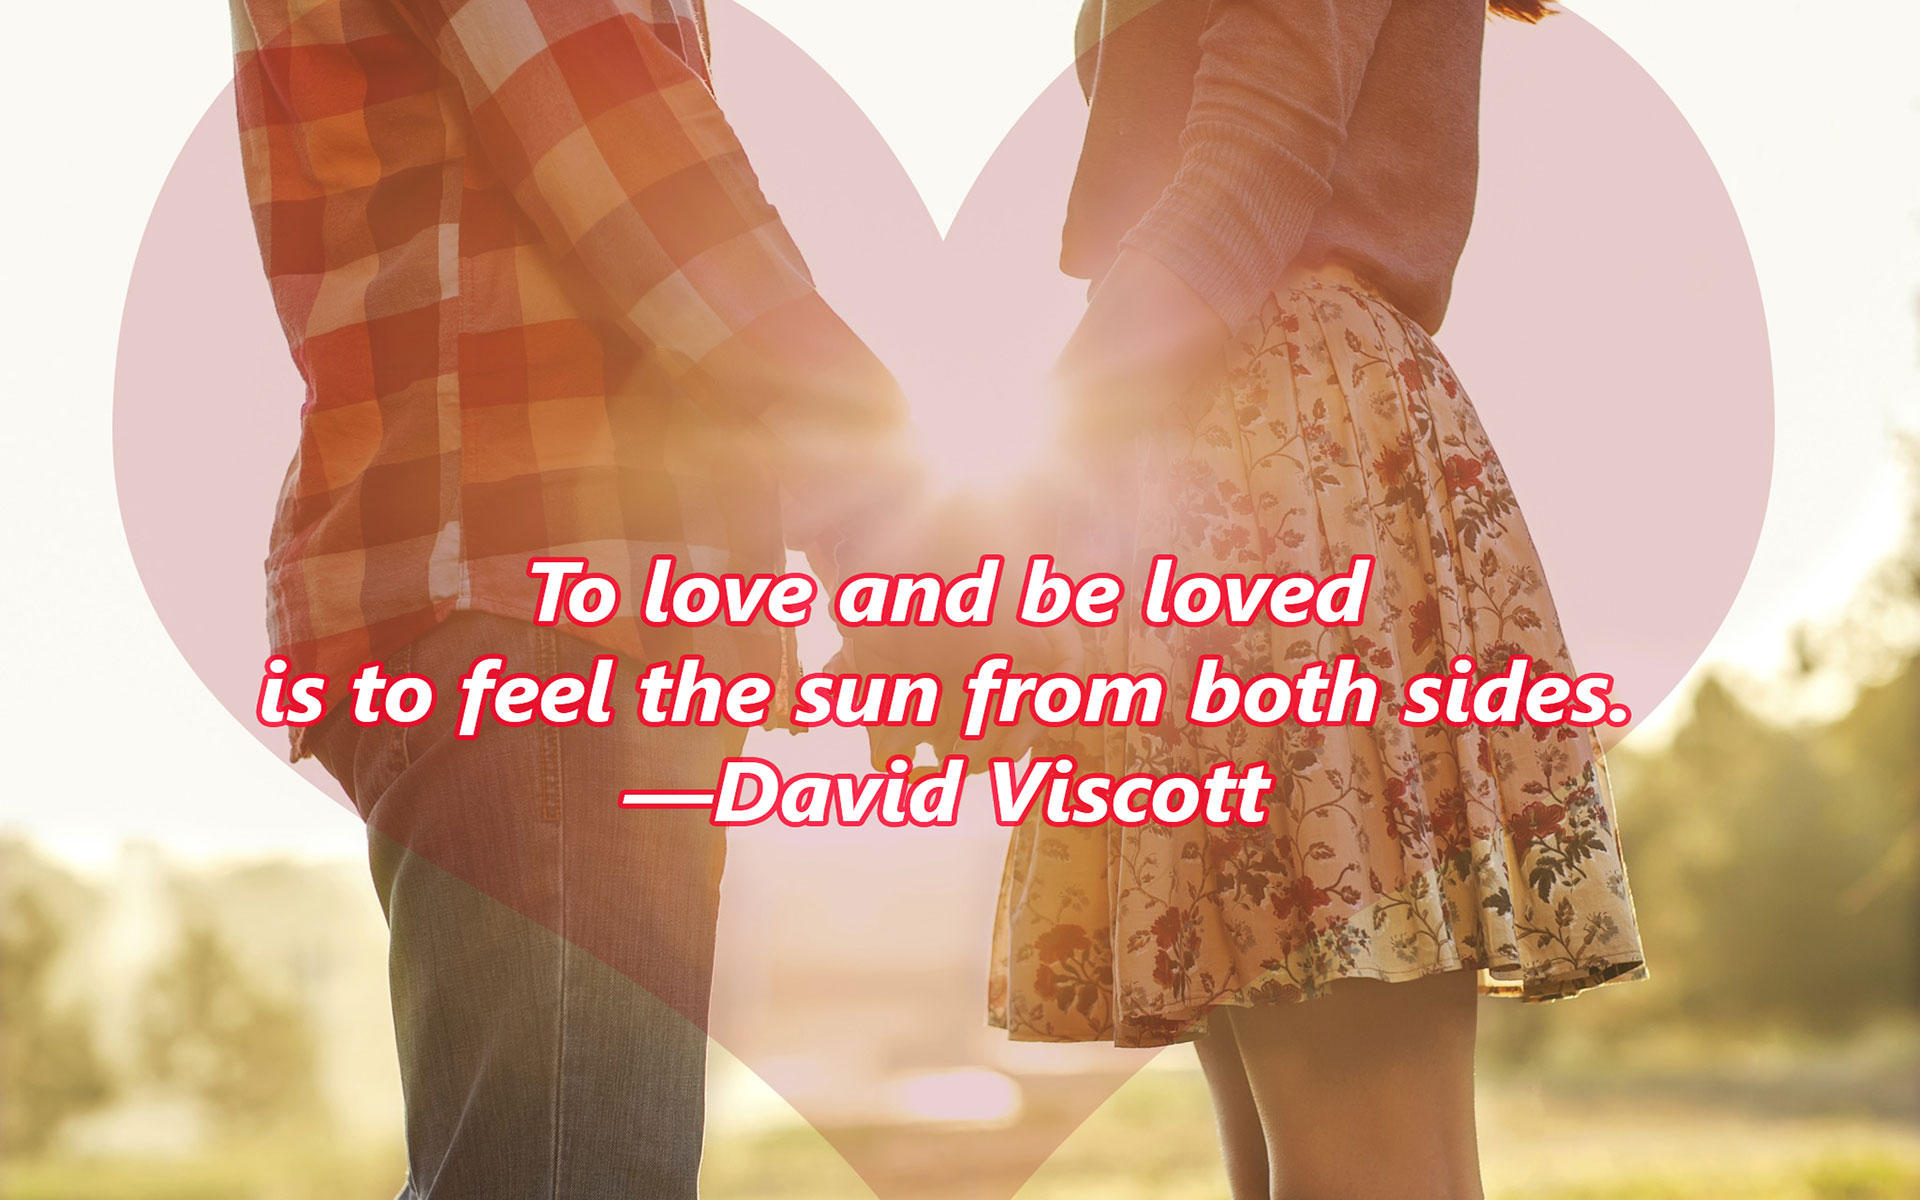 Cute-Couple-With-Quotes-1080p-wallpaper-wp3404313